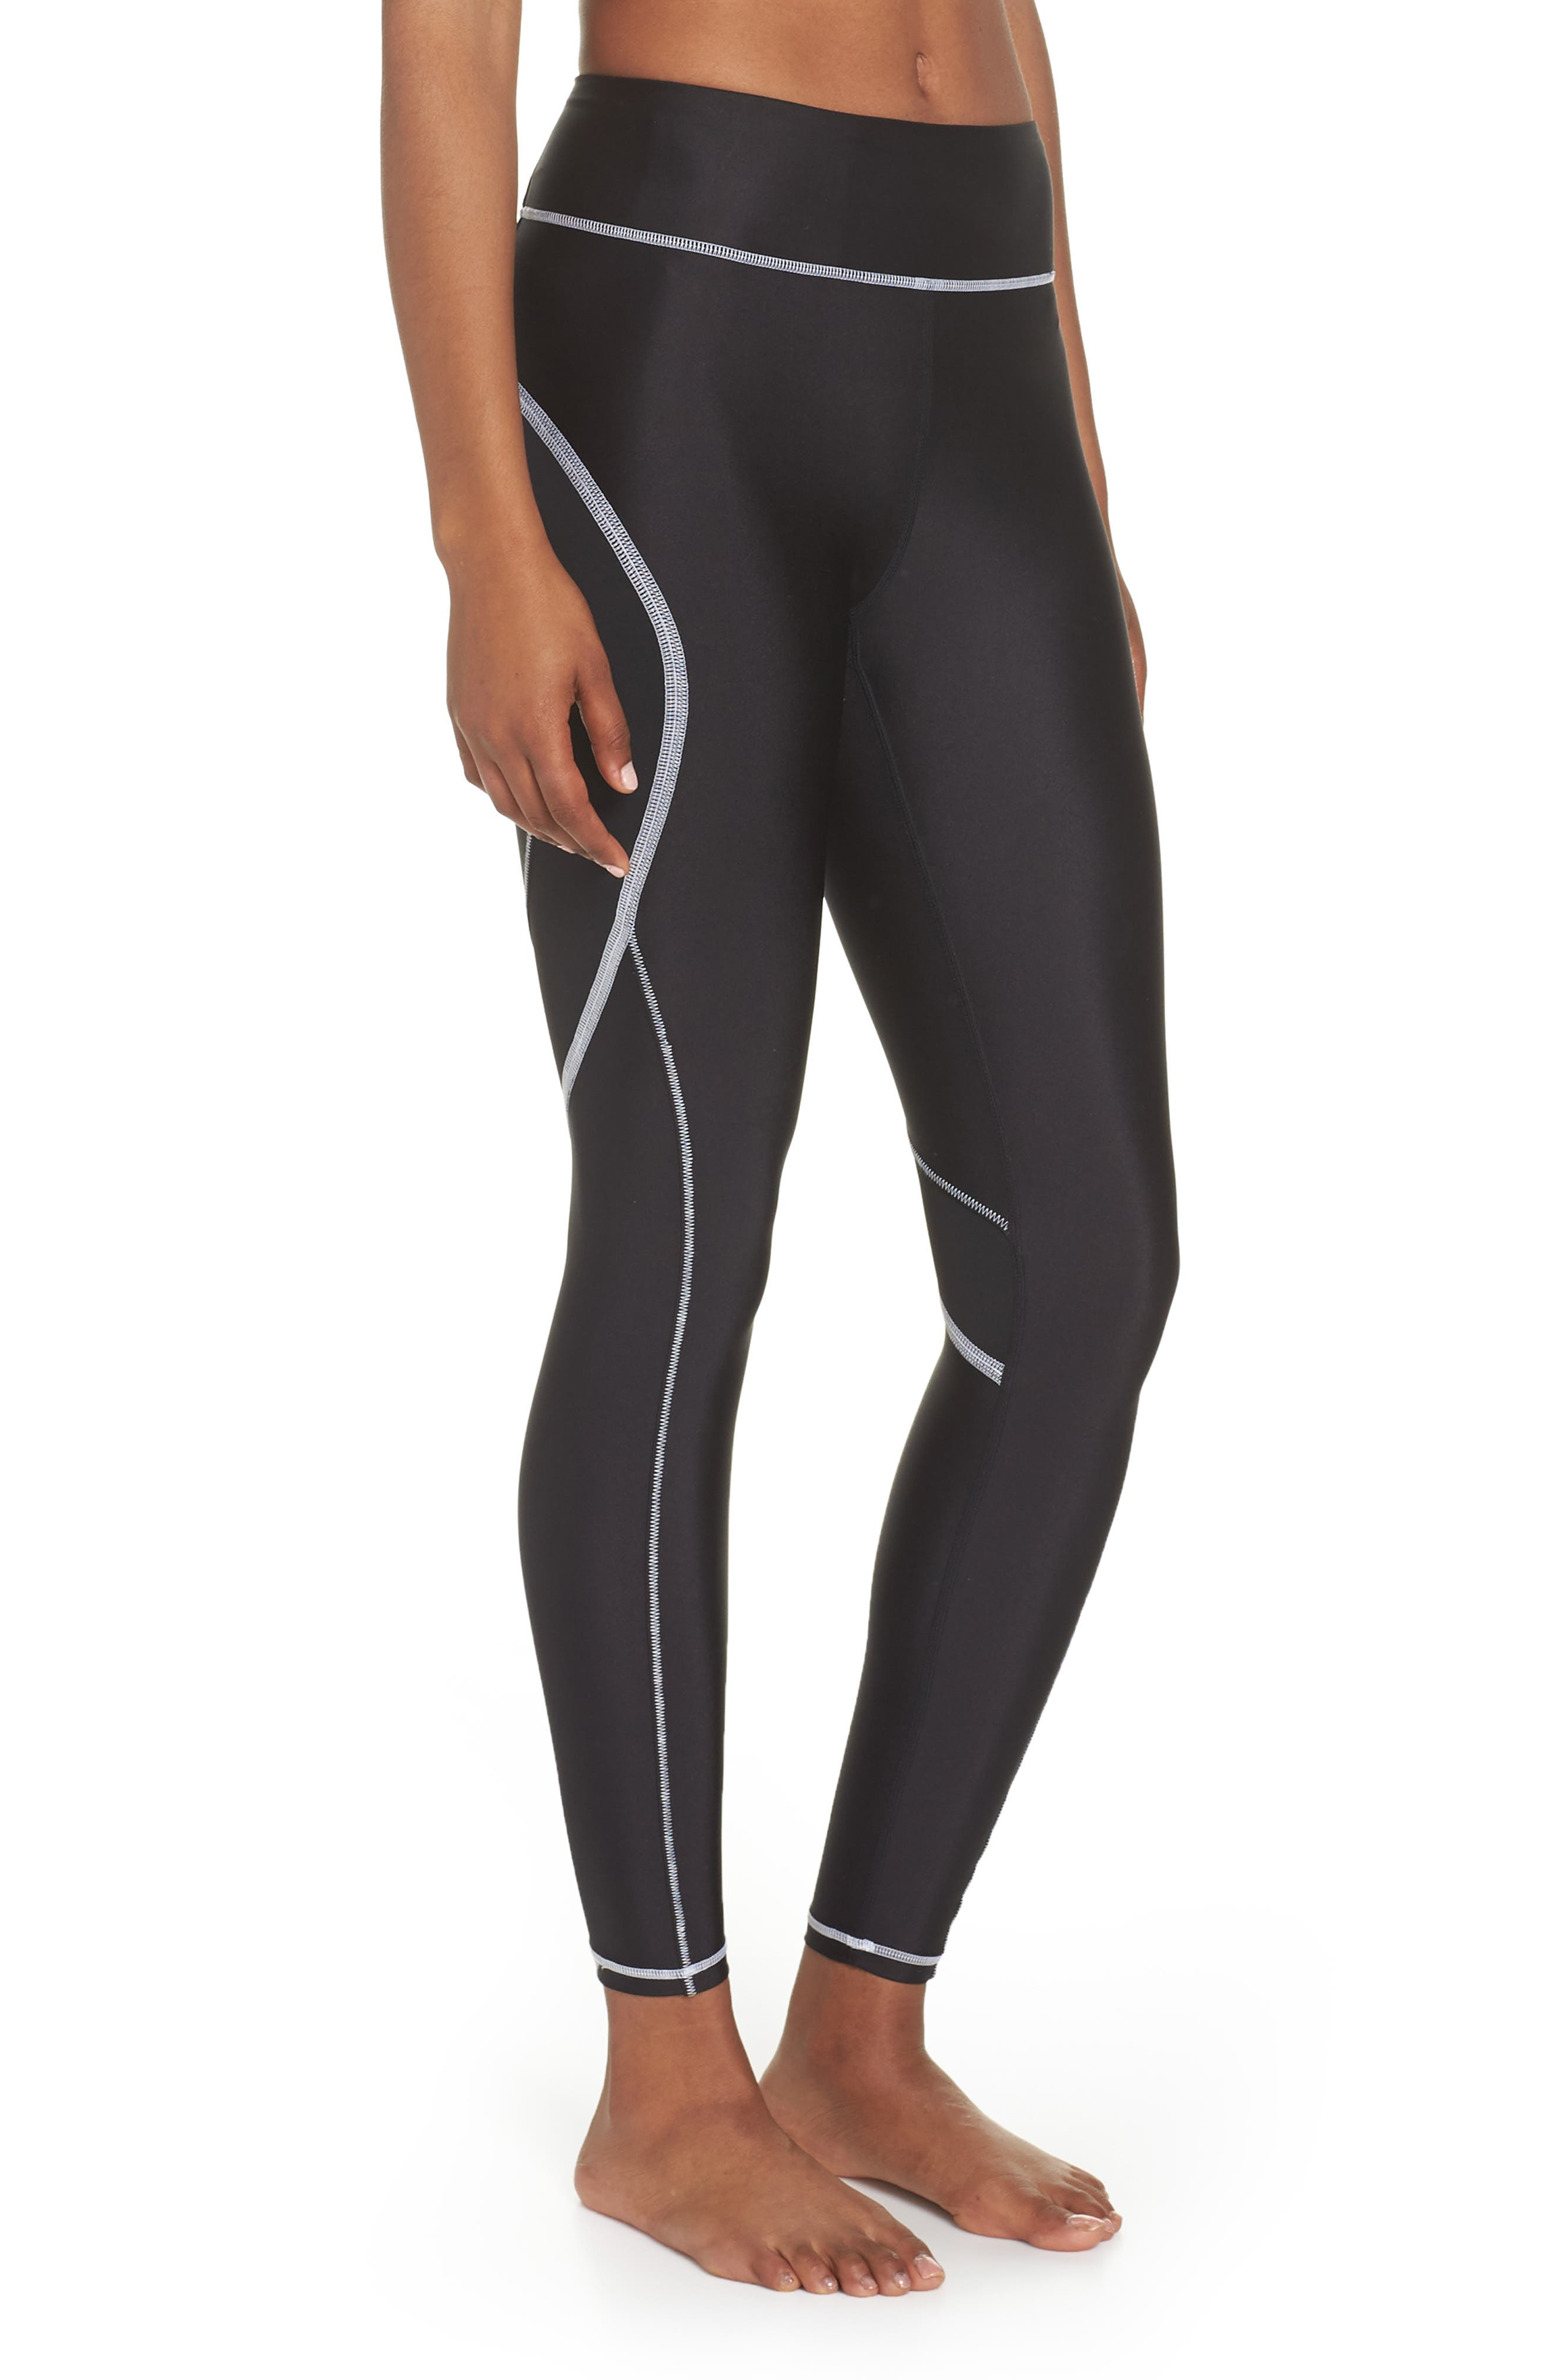 Surf Tights,                             Alternate thumbnail 3, color,                             BLACK/ WHITE